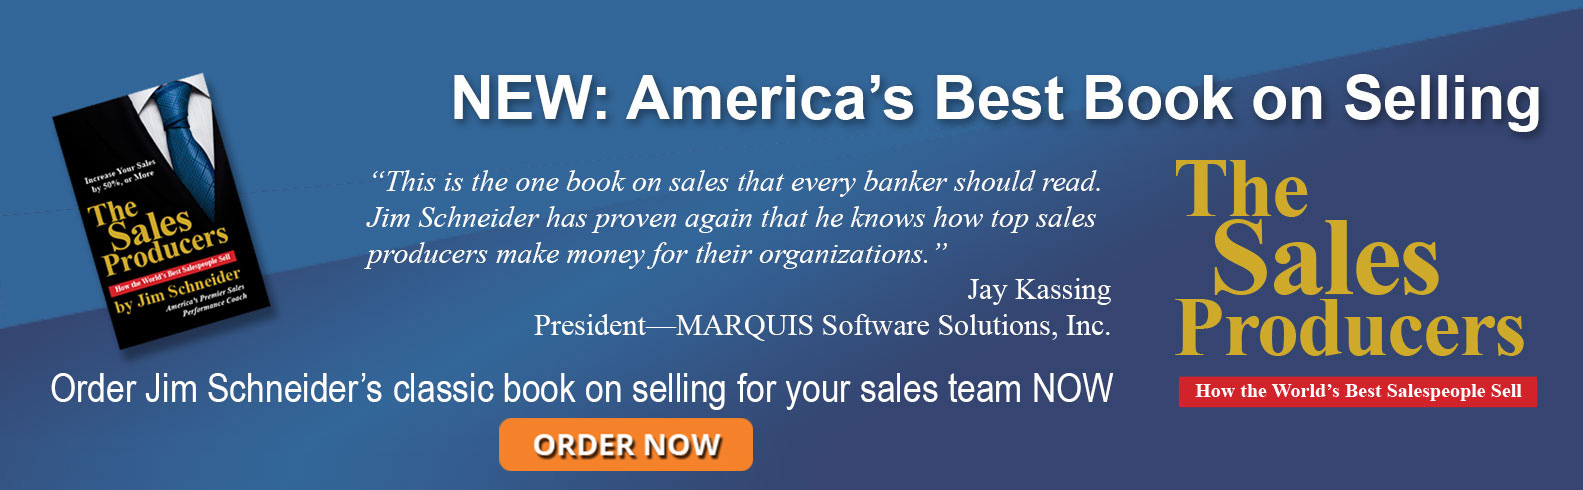 The-Sales-Producers-book